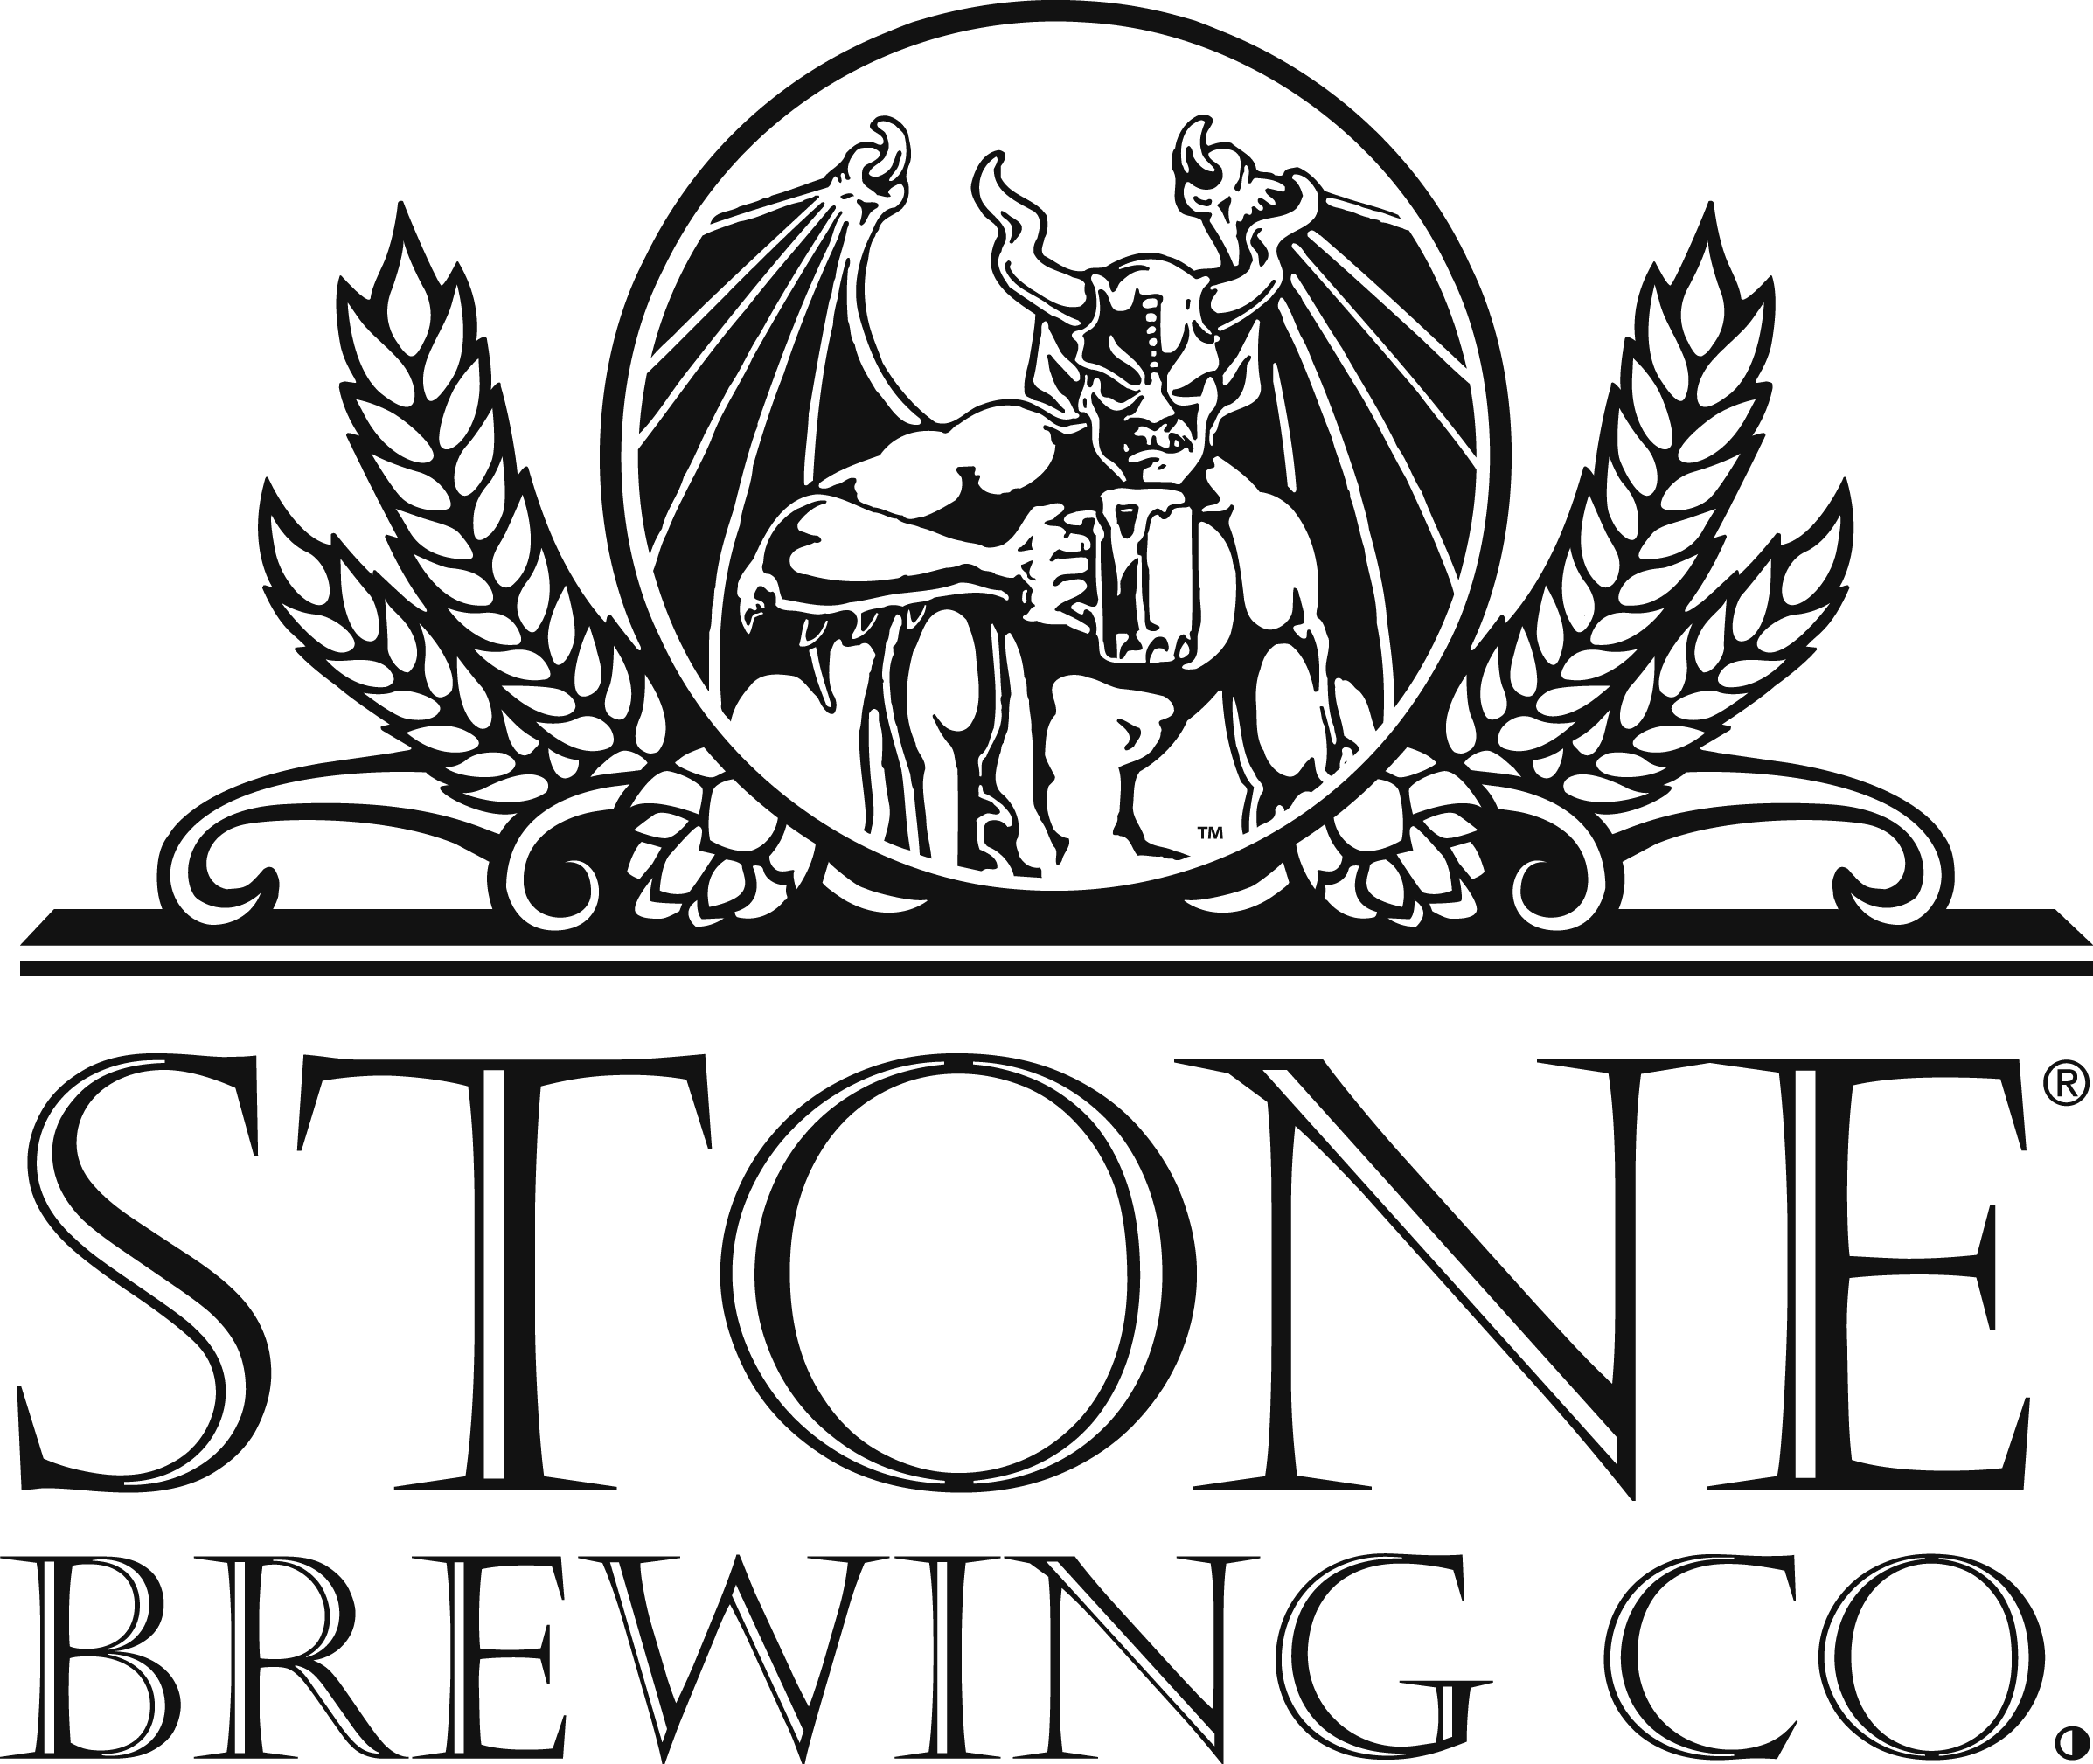 "Stone Brewing Company - San Diego, CA   ""Stone Brewing has come a long way since opening in 1996. We have grown from a small microbrewery with just two founders into one of the largest craft breweries in the United States, employing more than 1,100 amazing men and women. From the beginning, our goal has been to brew outstanding, unique beers while maintaining an unwavering commitment to sustainability, business ethics, and the art of brewing."""